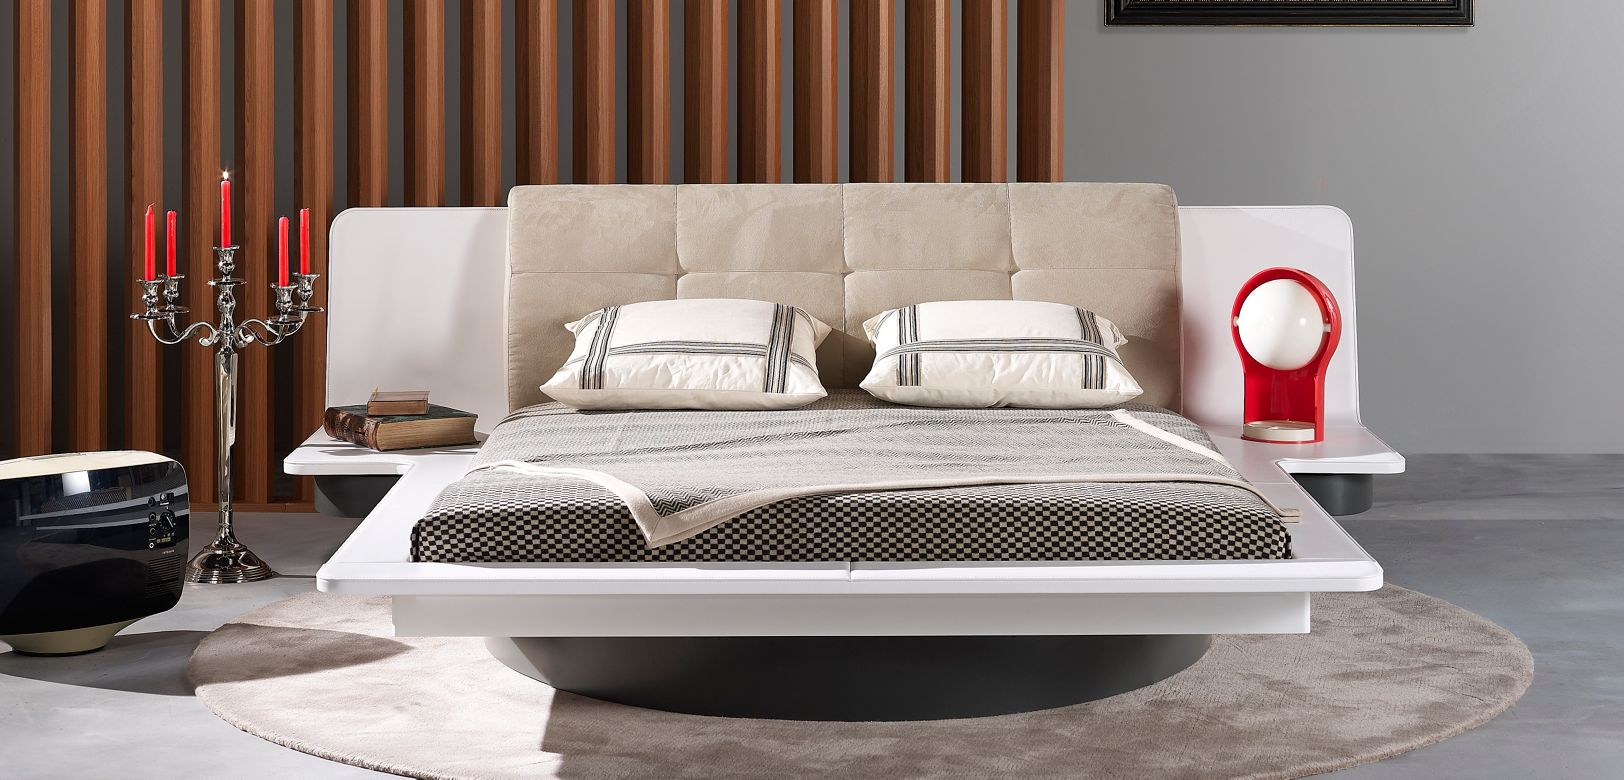 bagatelle bed with bedside tables roche bobois. Black Bedroom Furniture Sets. Home Design Ideas